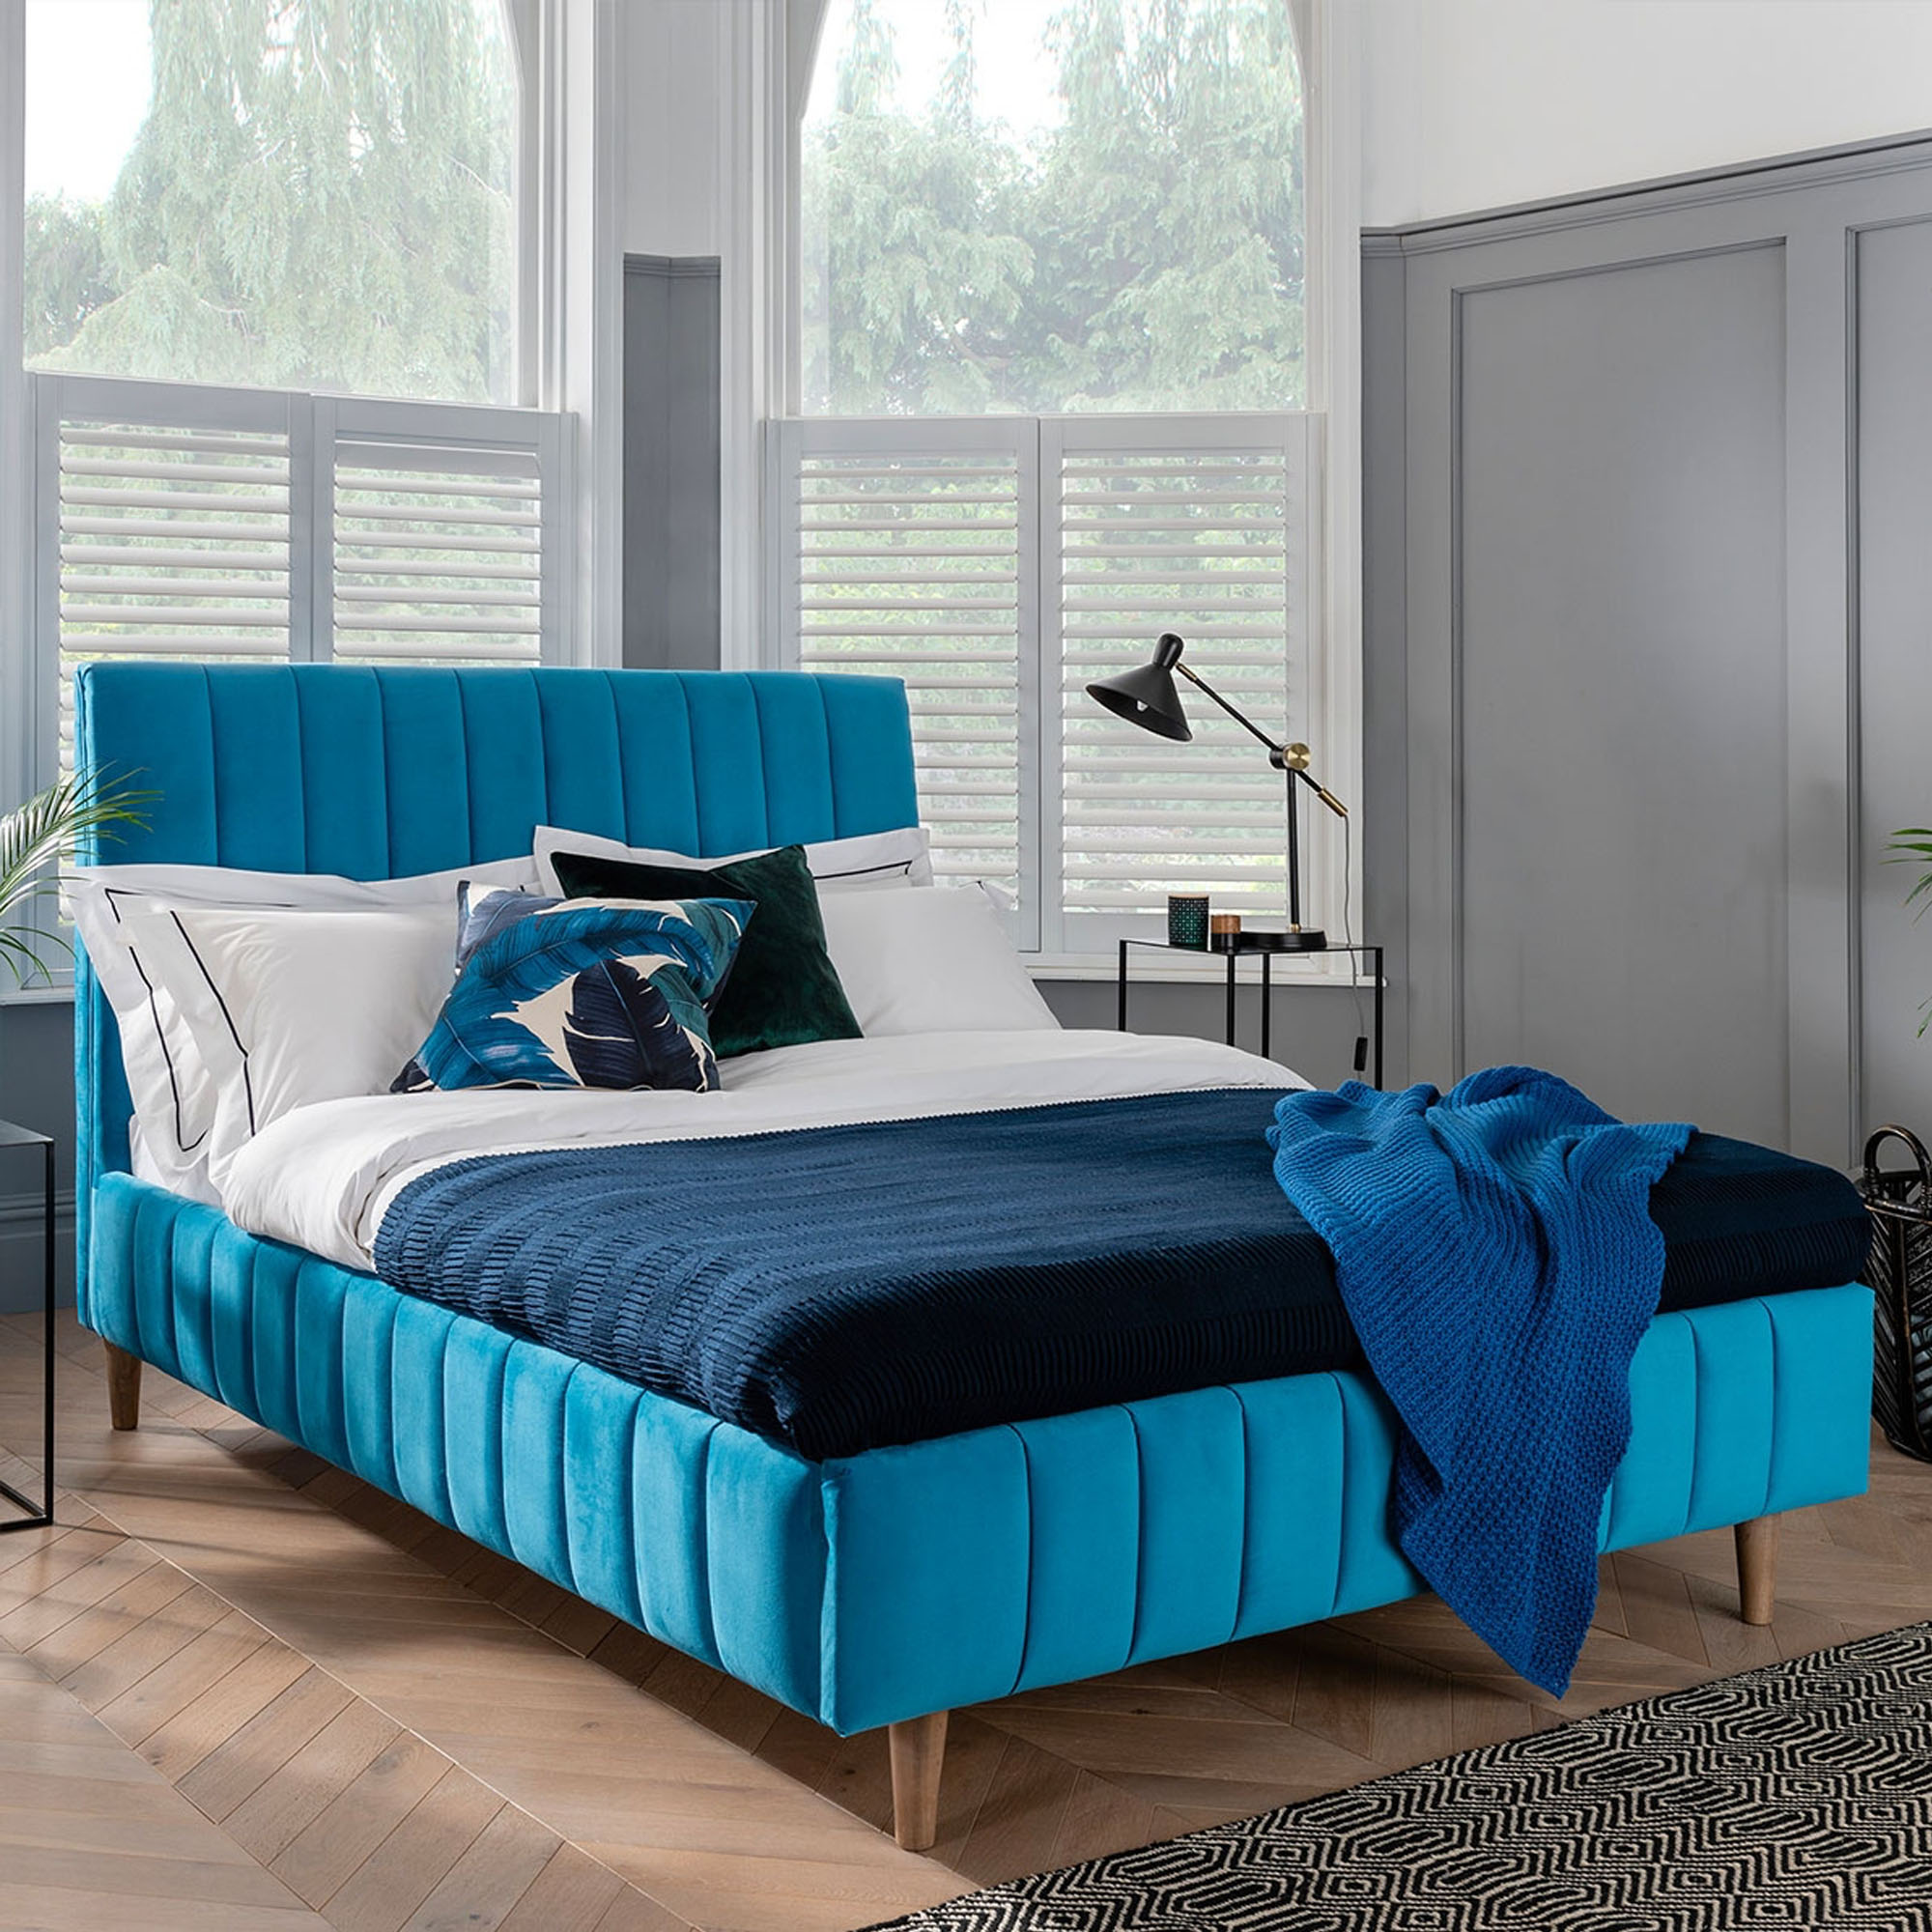 Hilton - Slatted Low End Bedframe